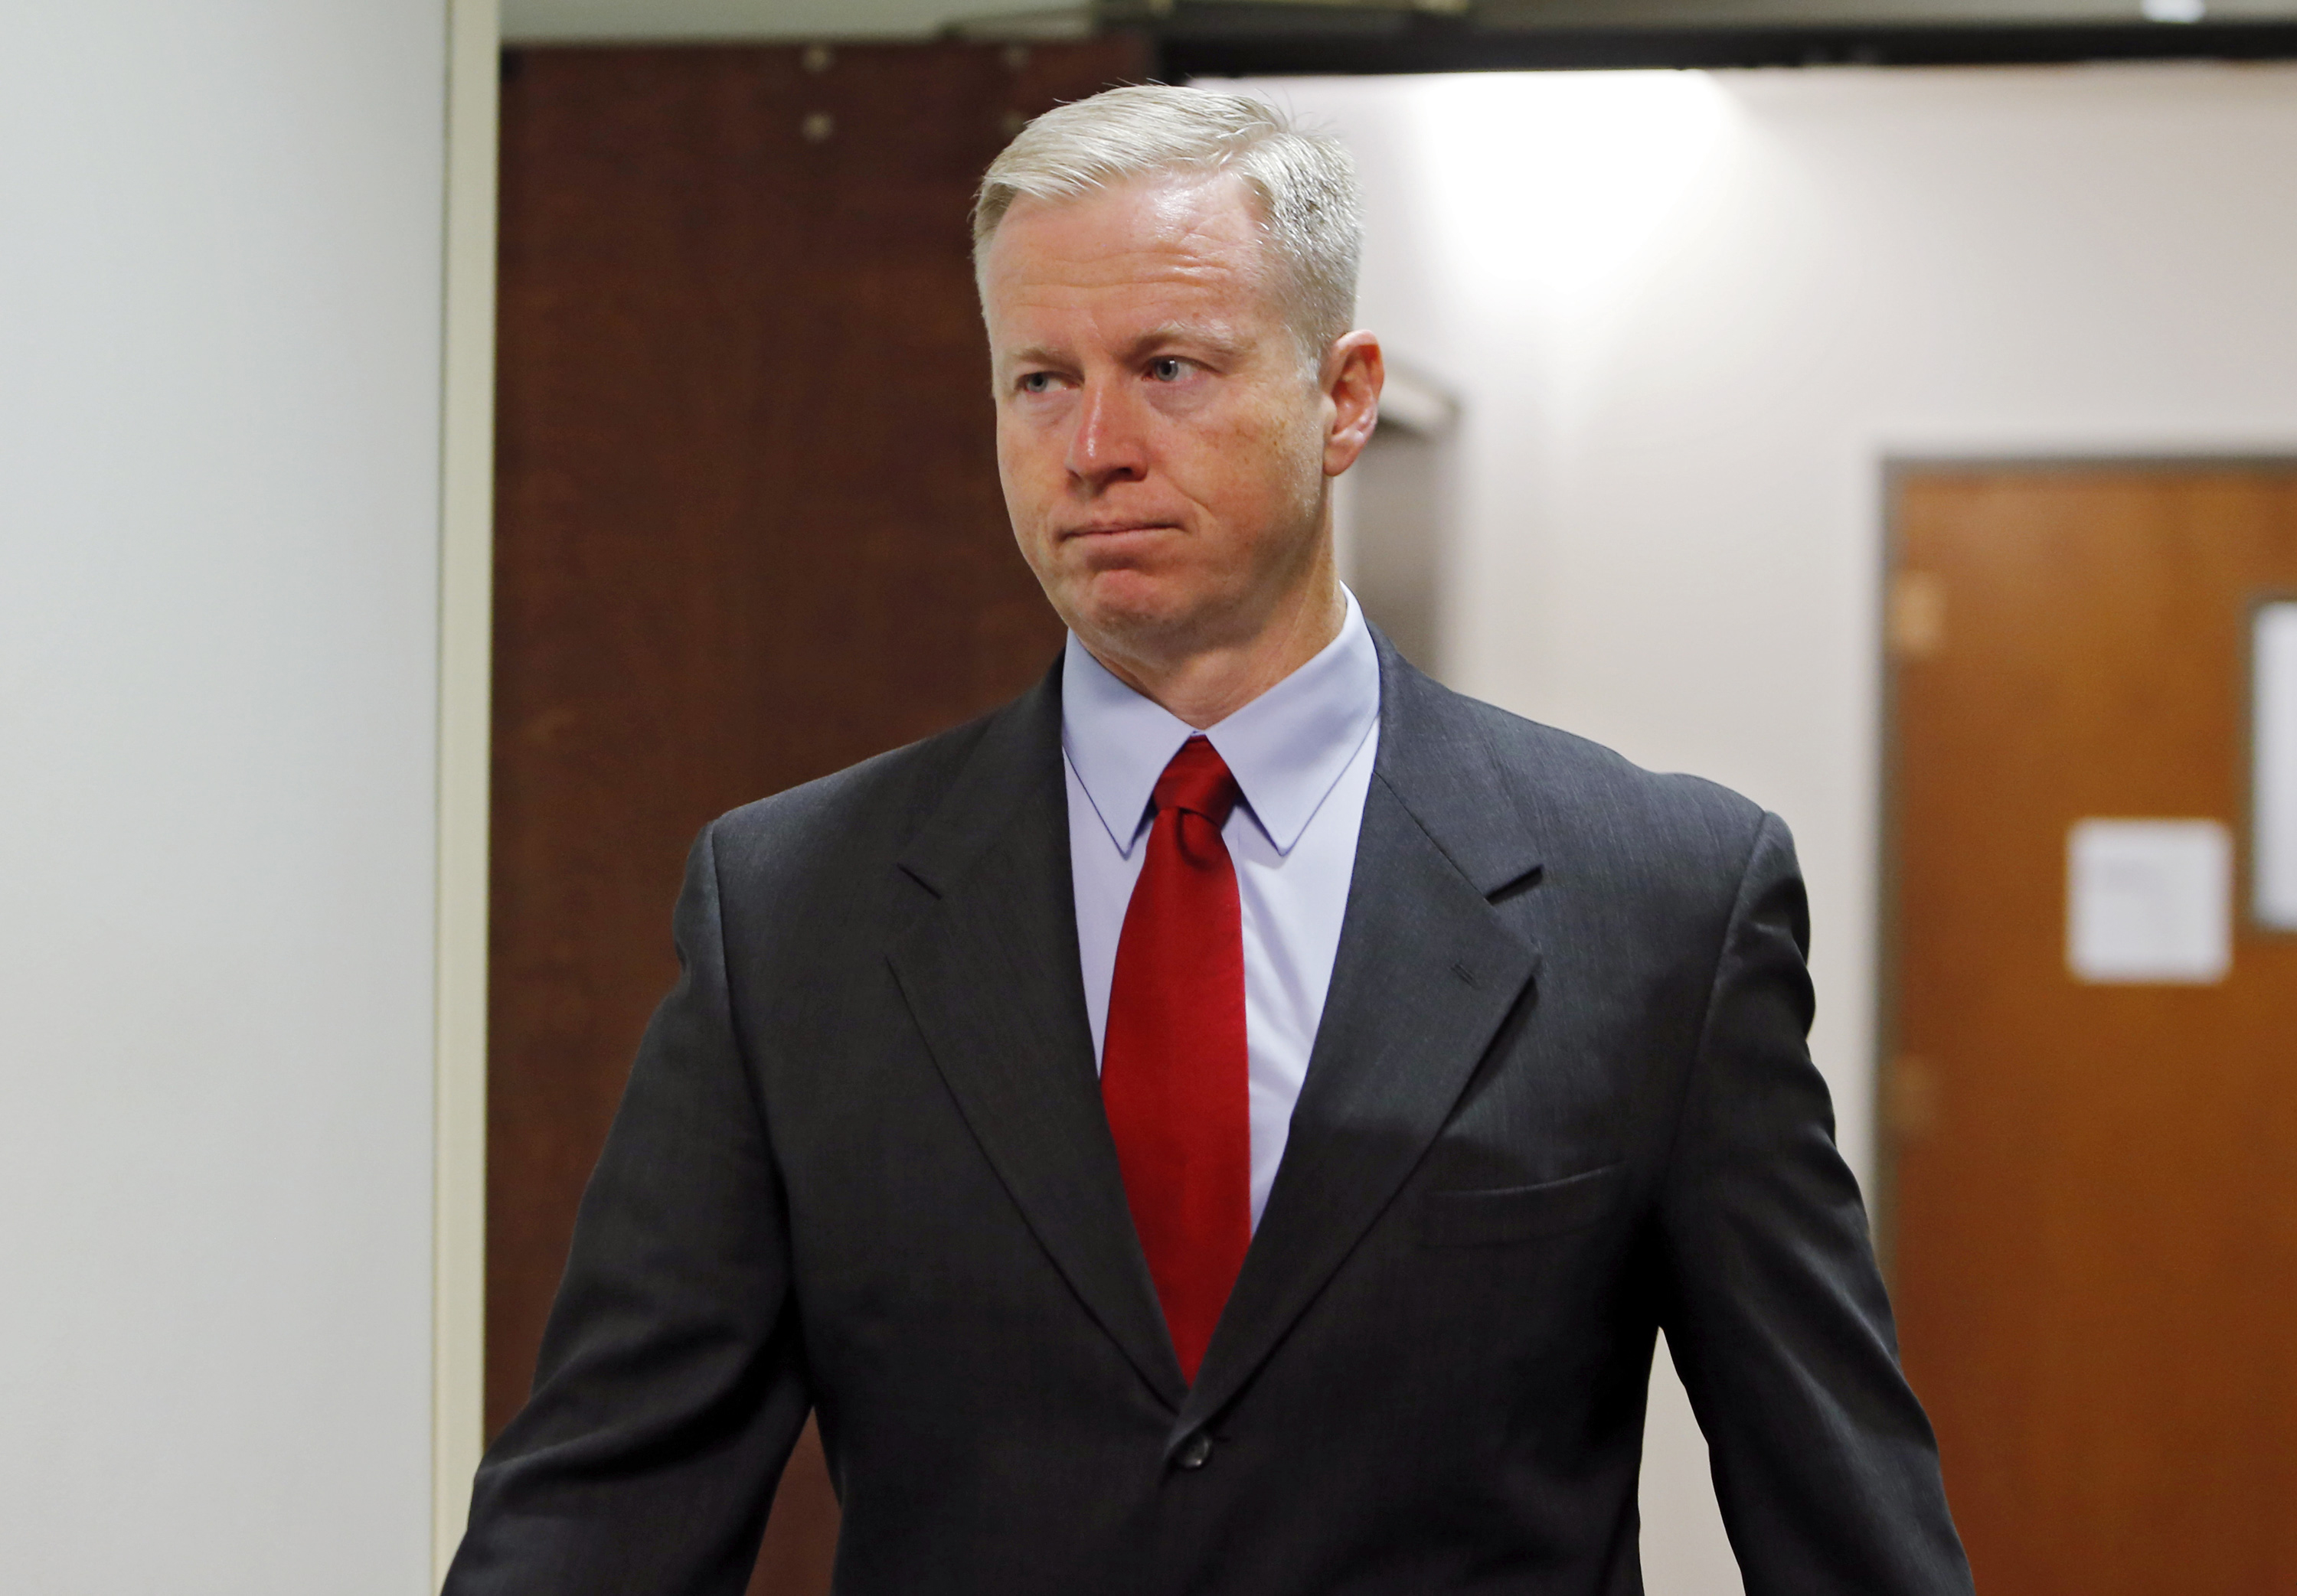 18th Judicial District Attorney George Brauchler arrives for a hearing for Aurora theater shooting suspect James Holmes at district court in Centennial, Colo. on Sept. 30, 2013.